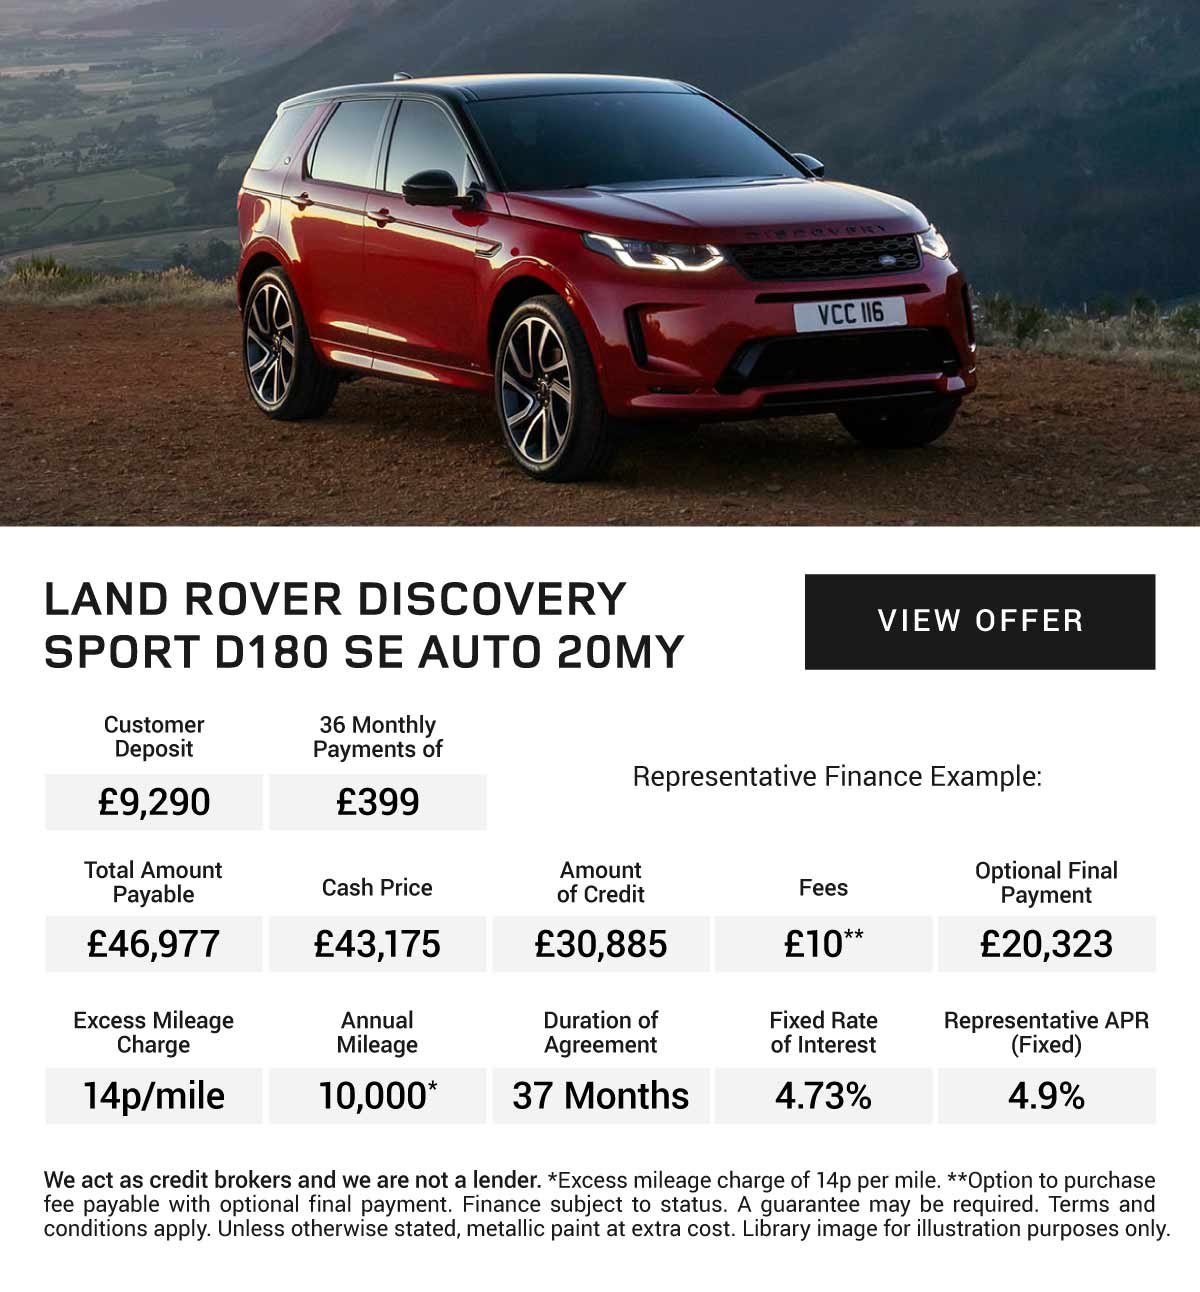 [Land Rover Discovery] LR Discovery Sport 050719 Banner 1